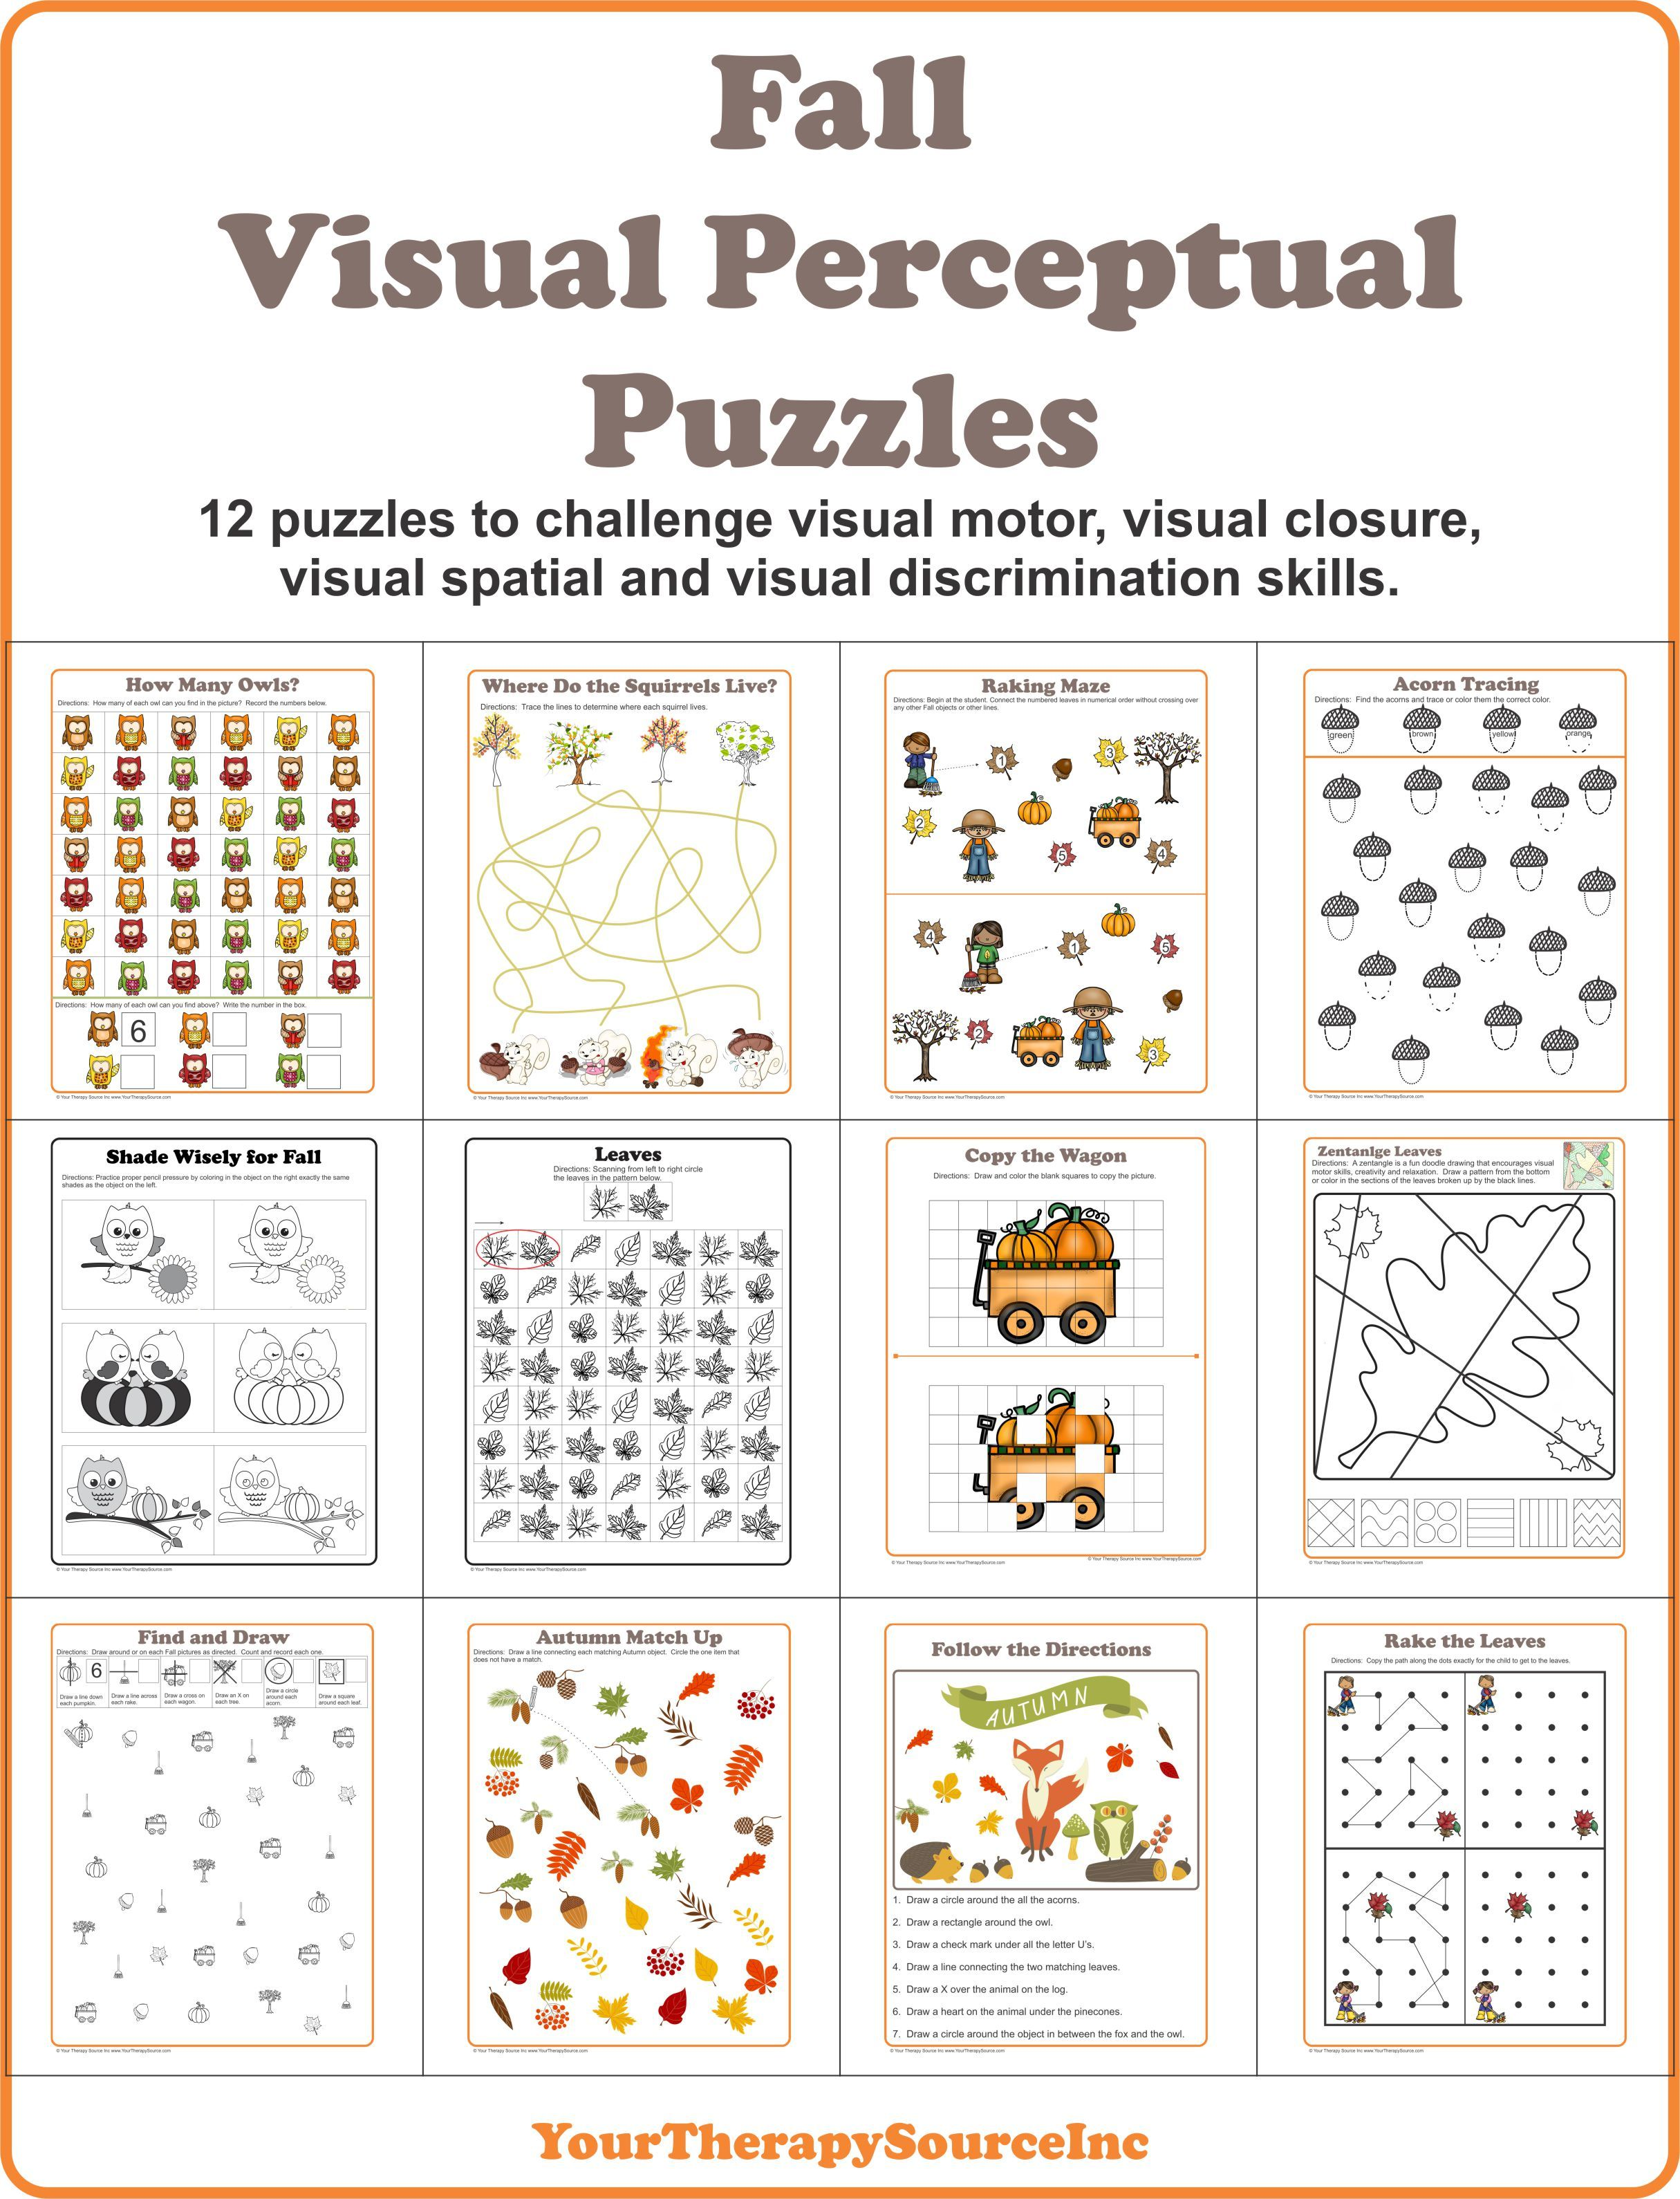 Fall Visual Perceptual Puzzles To Challenge Visual Motor